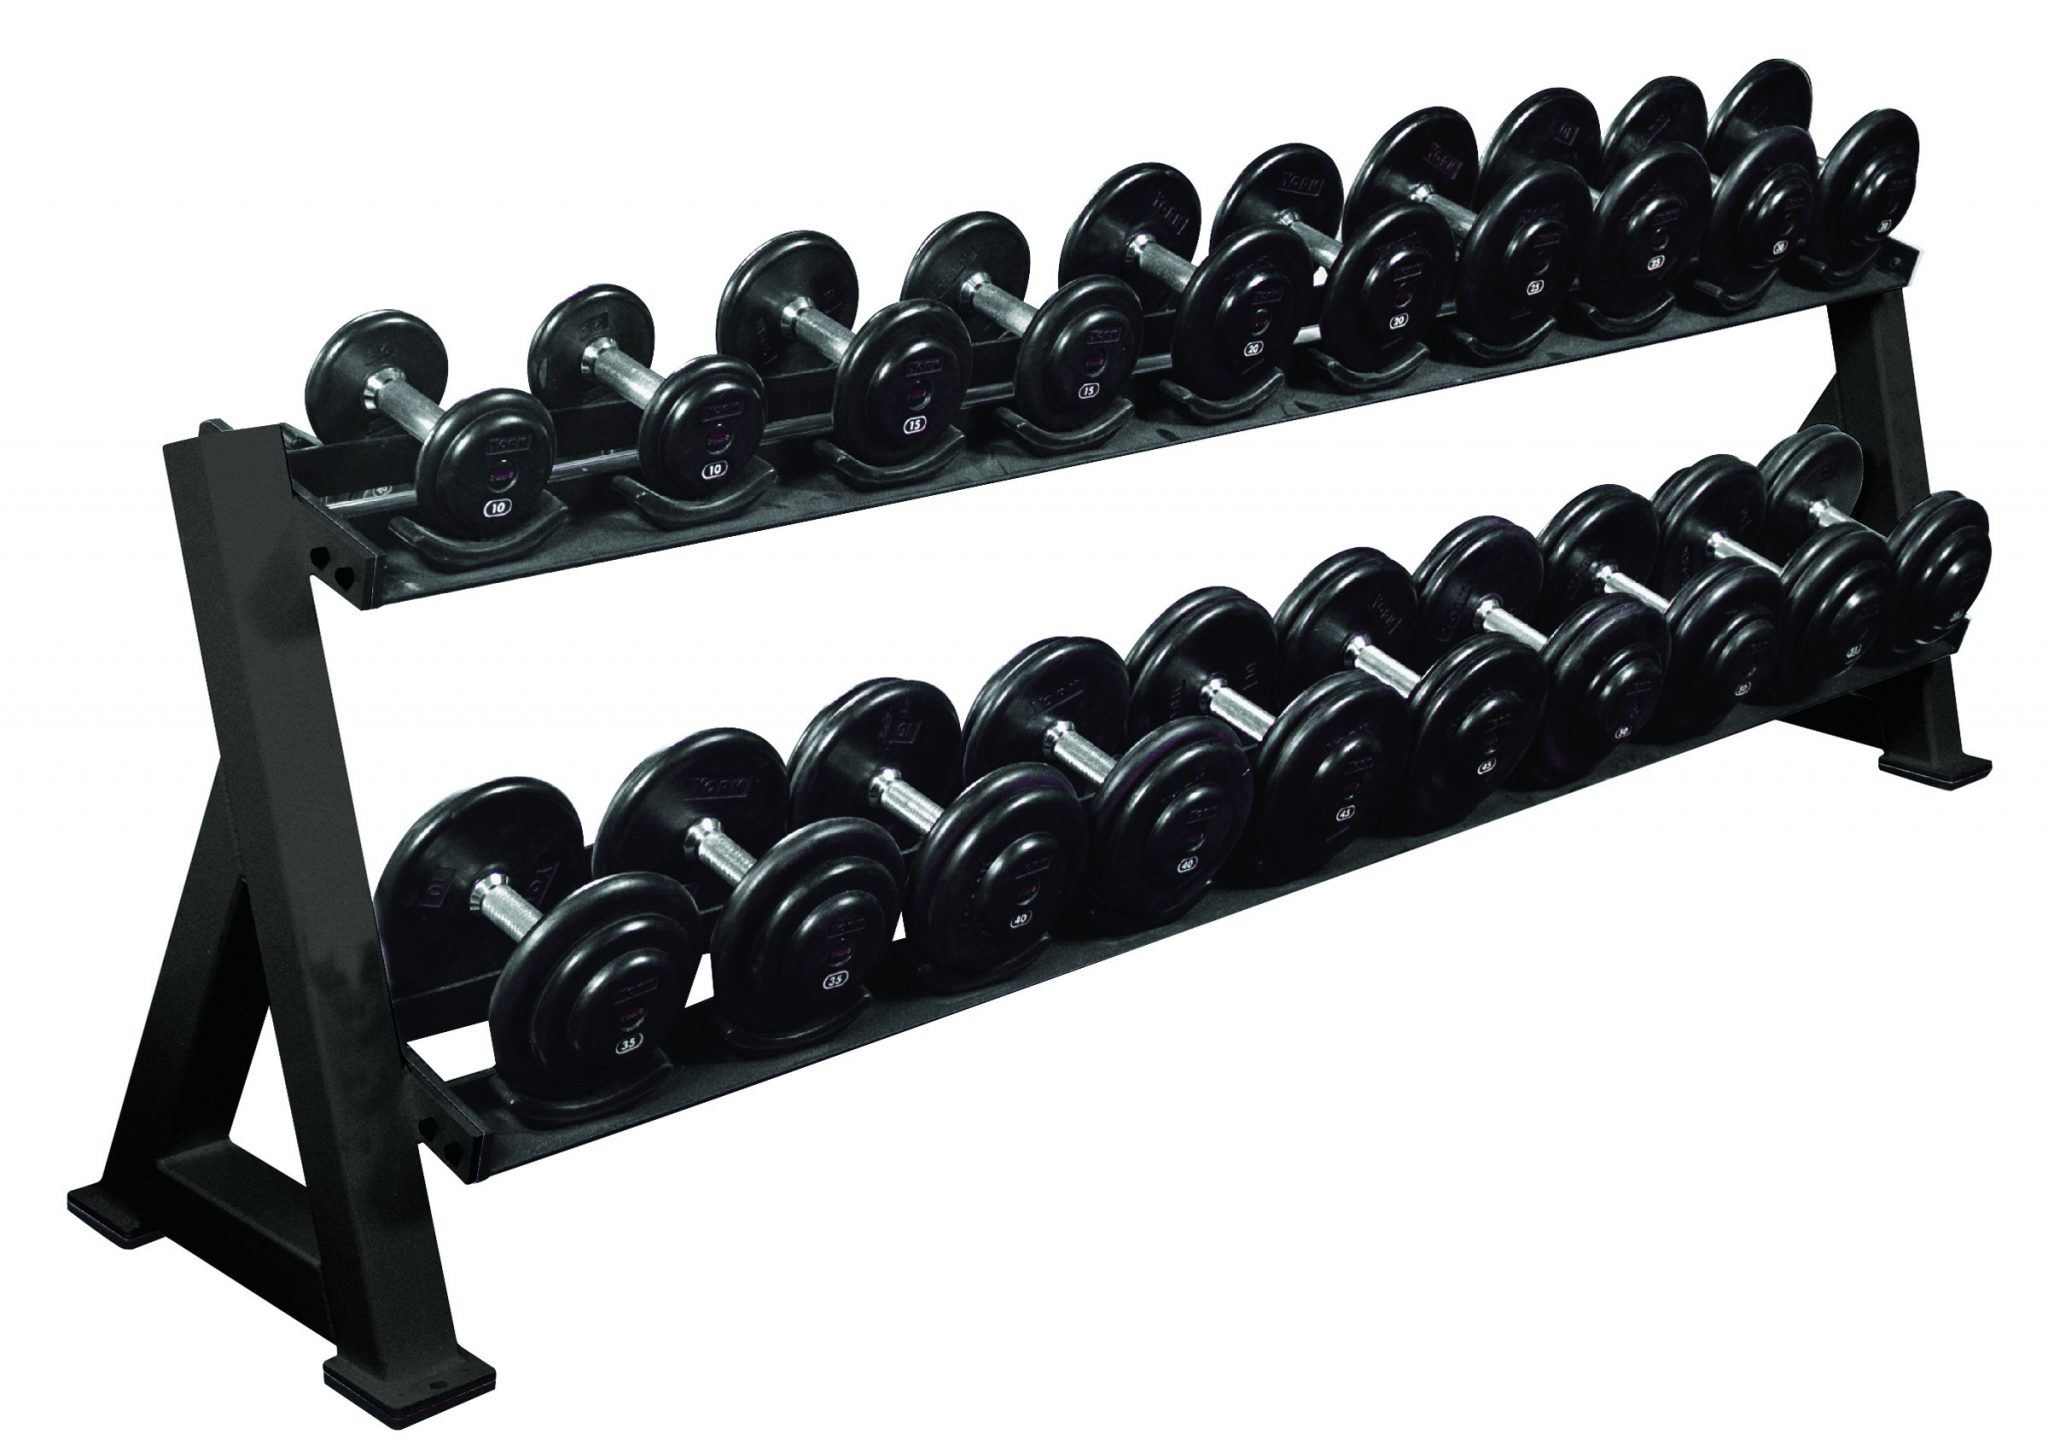 2 - Tier Dumbbell Rack with Saddles